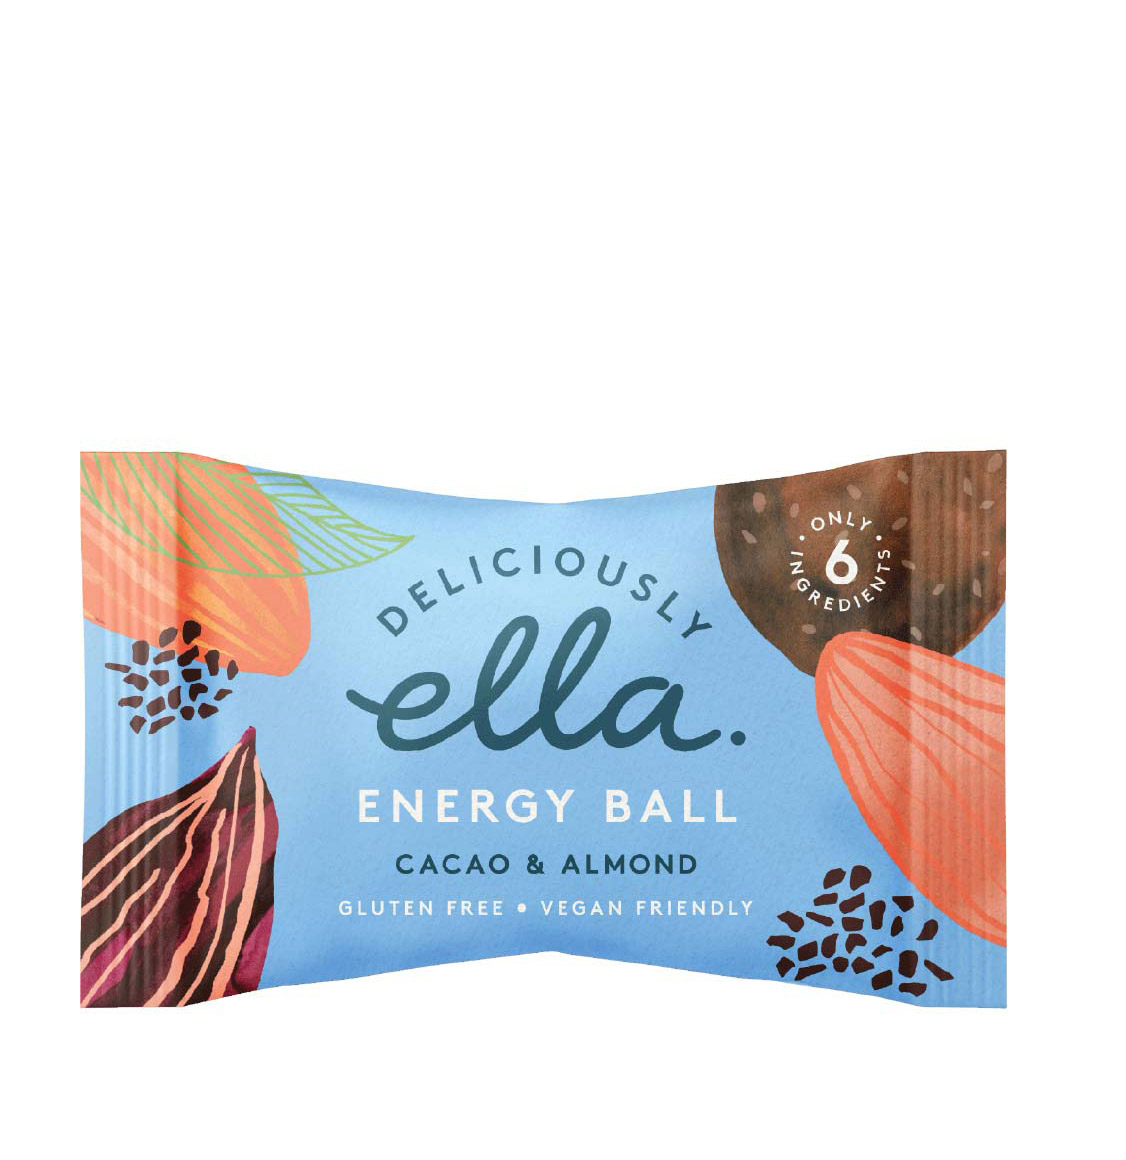 Deliciously Ella Cacao and Almond Energy Ball 4 x 40g